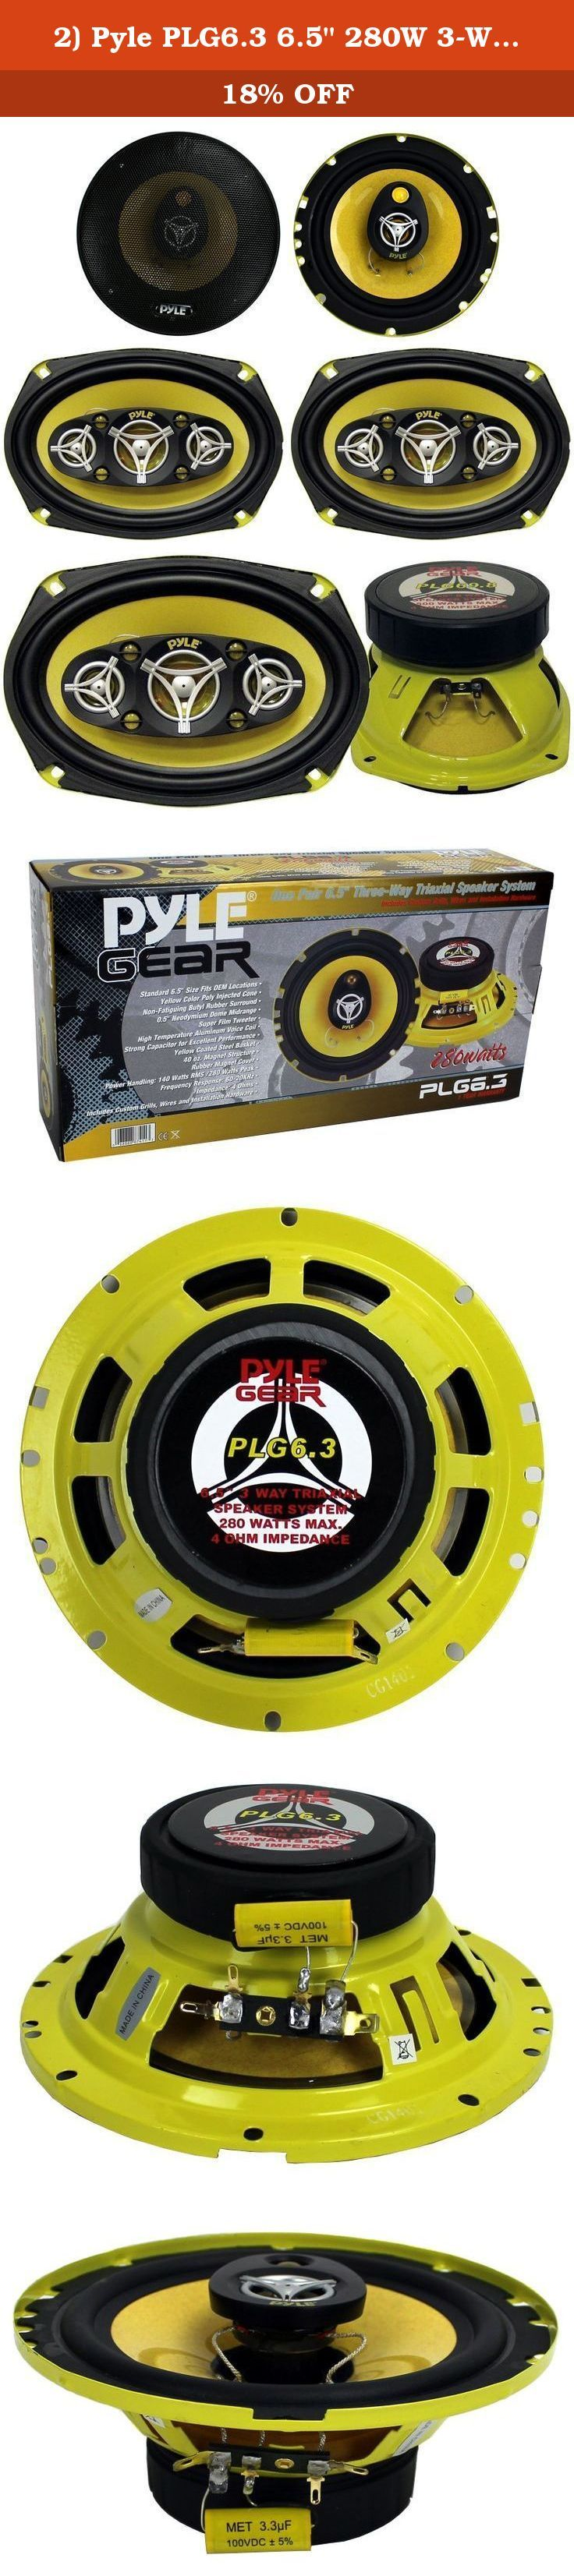 "2) Pyle PLG6.3 6.5"" 280W 3-Way + 2) PLG69.8 6x9"" 500W 8-Way Car Audio Speakers. Package Includes: Pyle PLG6.3 6.5"" 280W 3-Way Car Speakers (1 pair) Pyle PLG69.8 6x9"" 500W 8-Way Car Speakers (1 pair) ----- The Pyle PLG6.3 speakers are designed to provide the best quality sound for the budget-minded enthusiast. These 6.5', three-way speakers have 280 watts of pure power, supported by a super film tweeter for sweet highs, 0.5' neodymium dome for mids, and a high temperature voice coil to…"